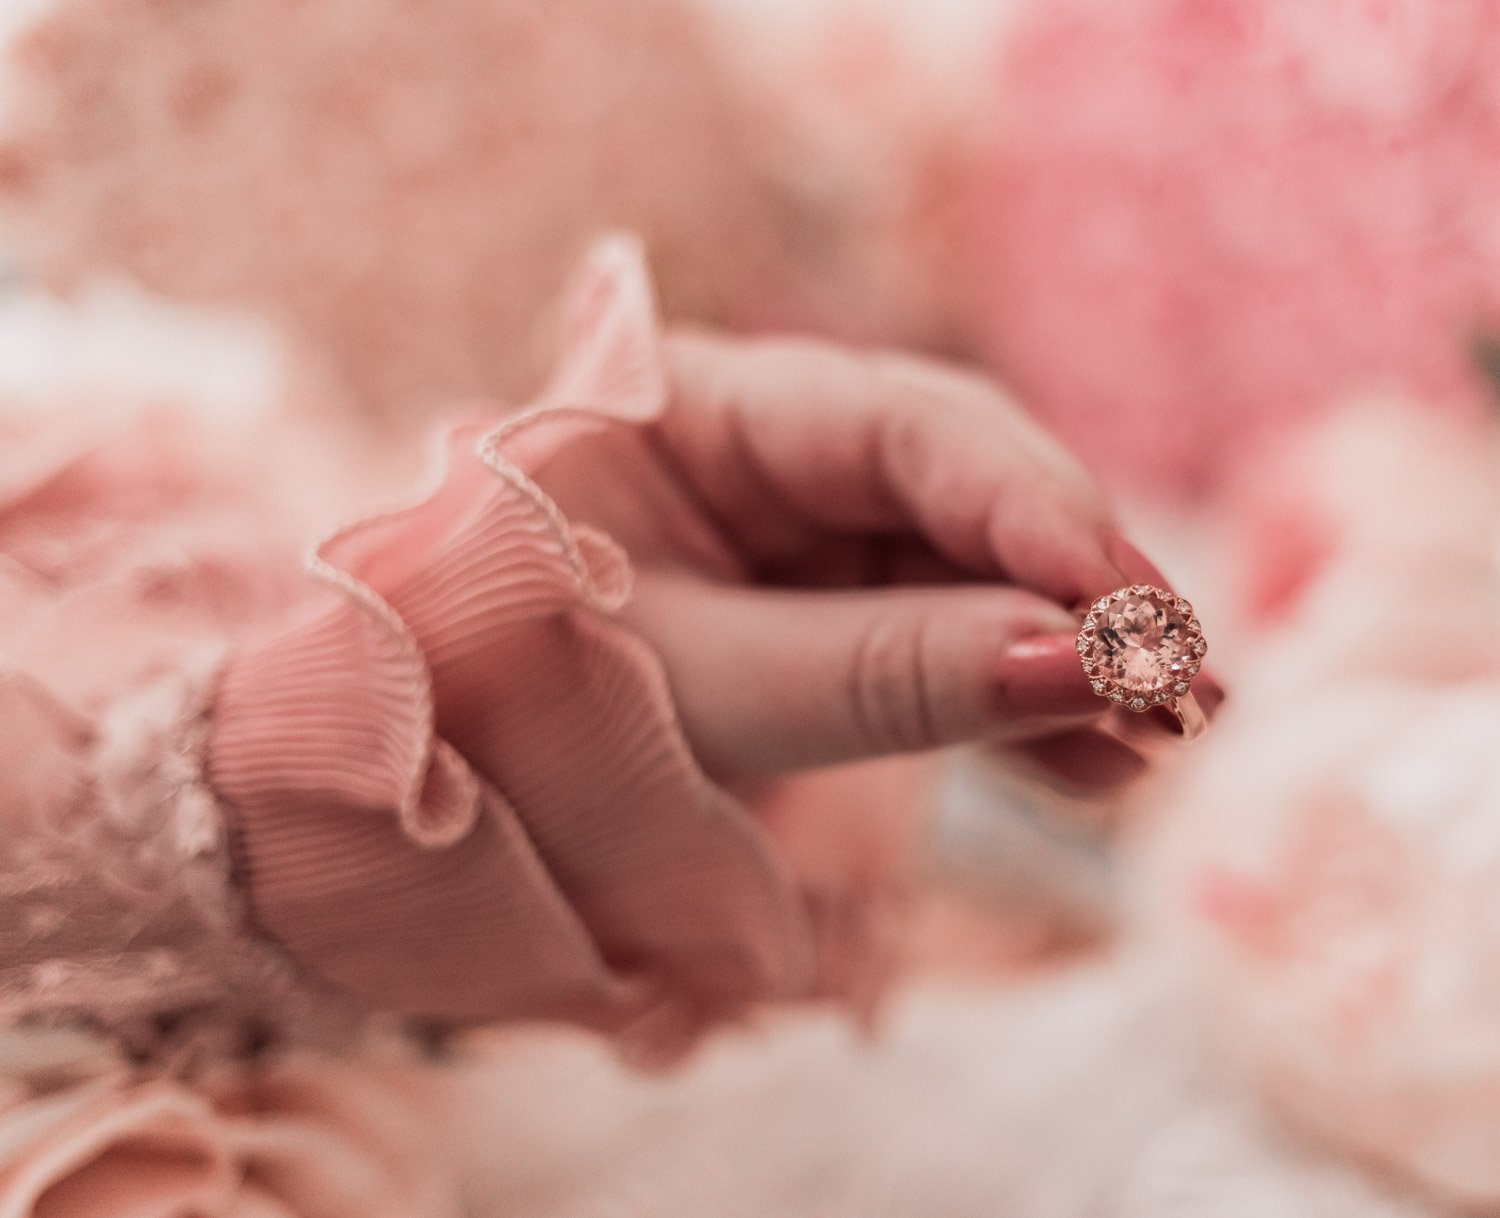 Fashion Blogger Elizabeth Hugen of Lizzie in Lace shares how to get free jewelry along with thoughts on this stunning Morganite ring with rose gold